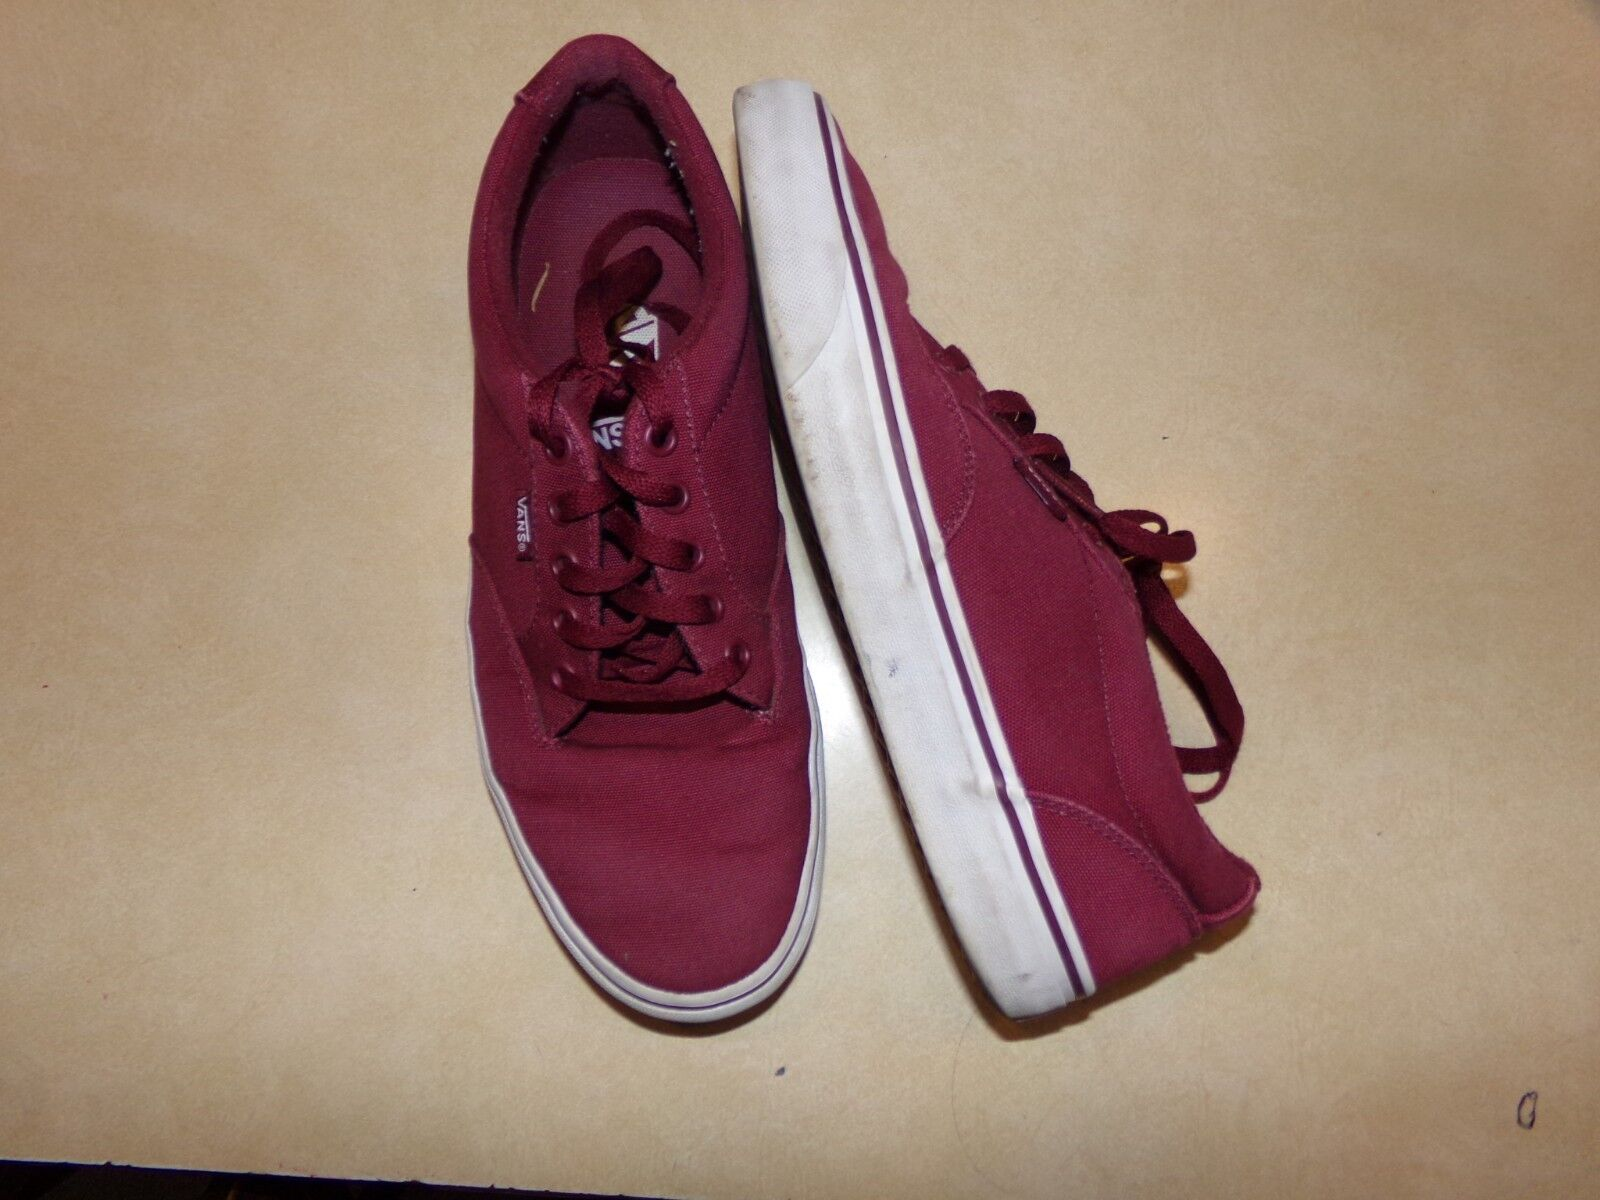 Vans Mens Sneakers Burgundy  Canvas Shoes Sneakers Mens Size 10 ce978e